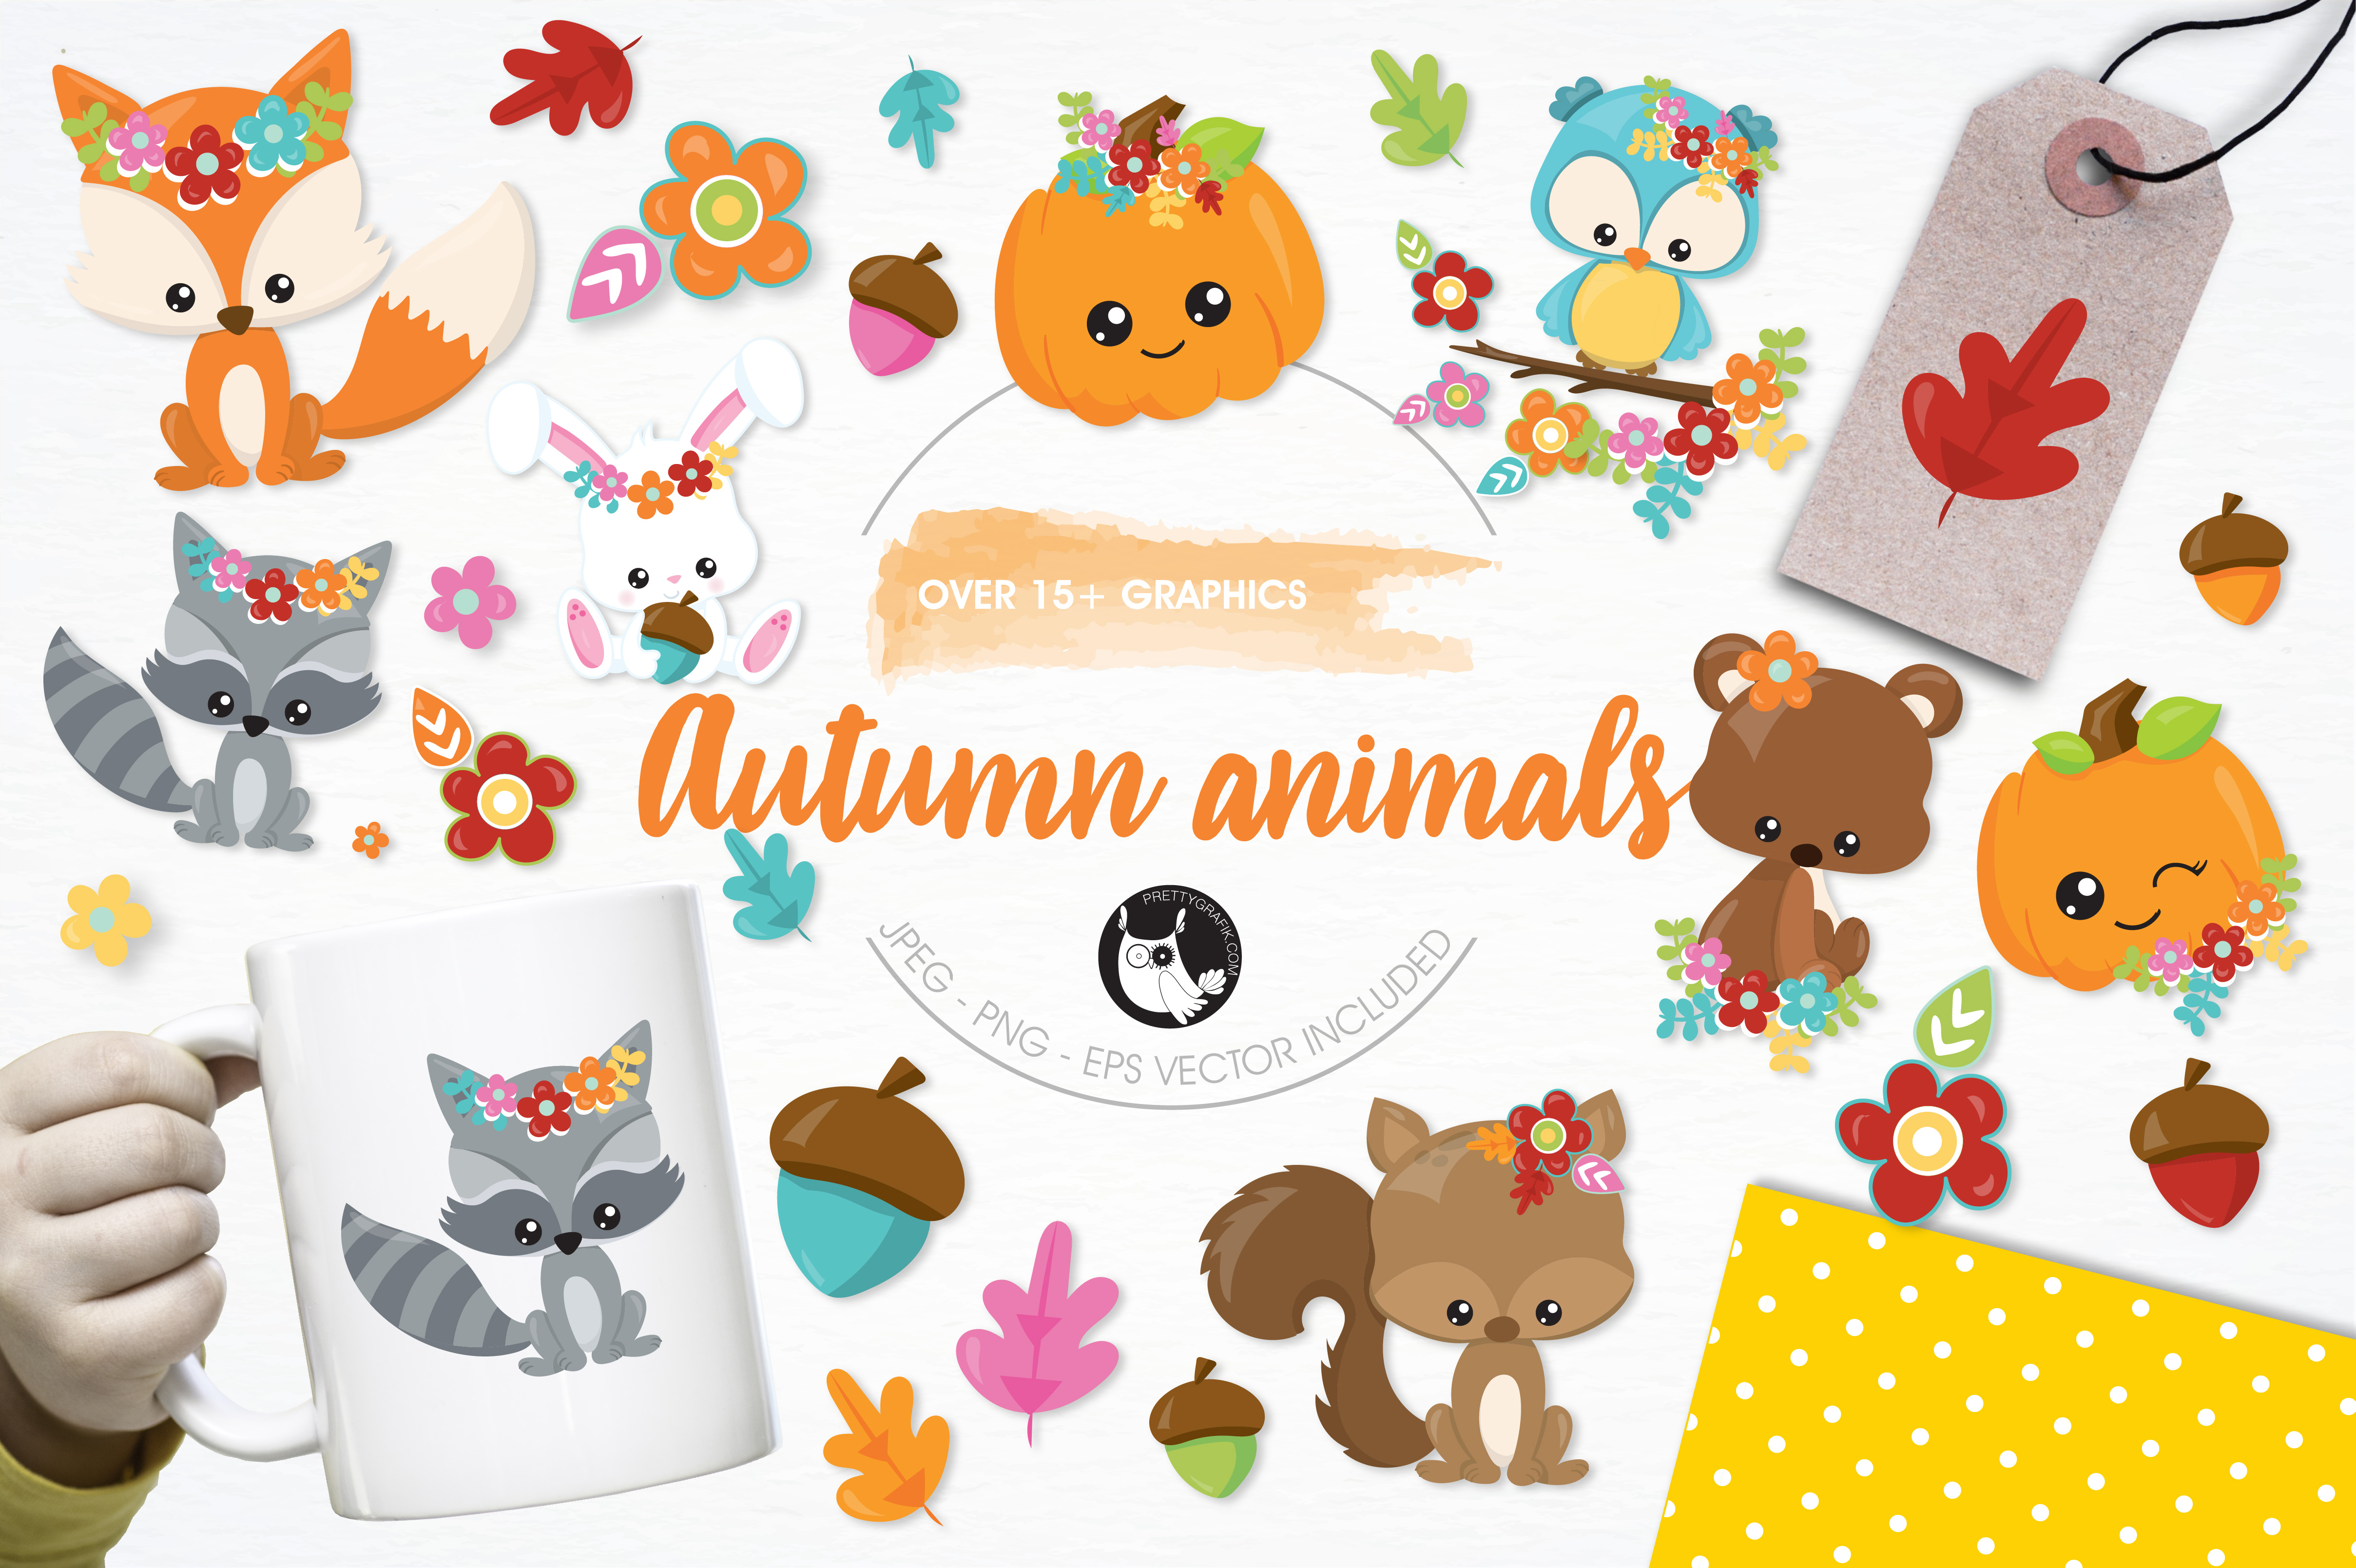 Download Free Autumn Animals Graphic By Prettygrafik Creative Fabrica for Cricut Explore, Silhouette and other cutting machines.